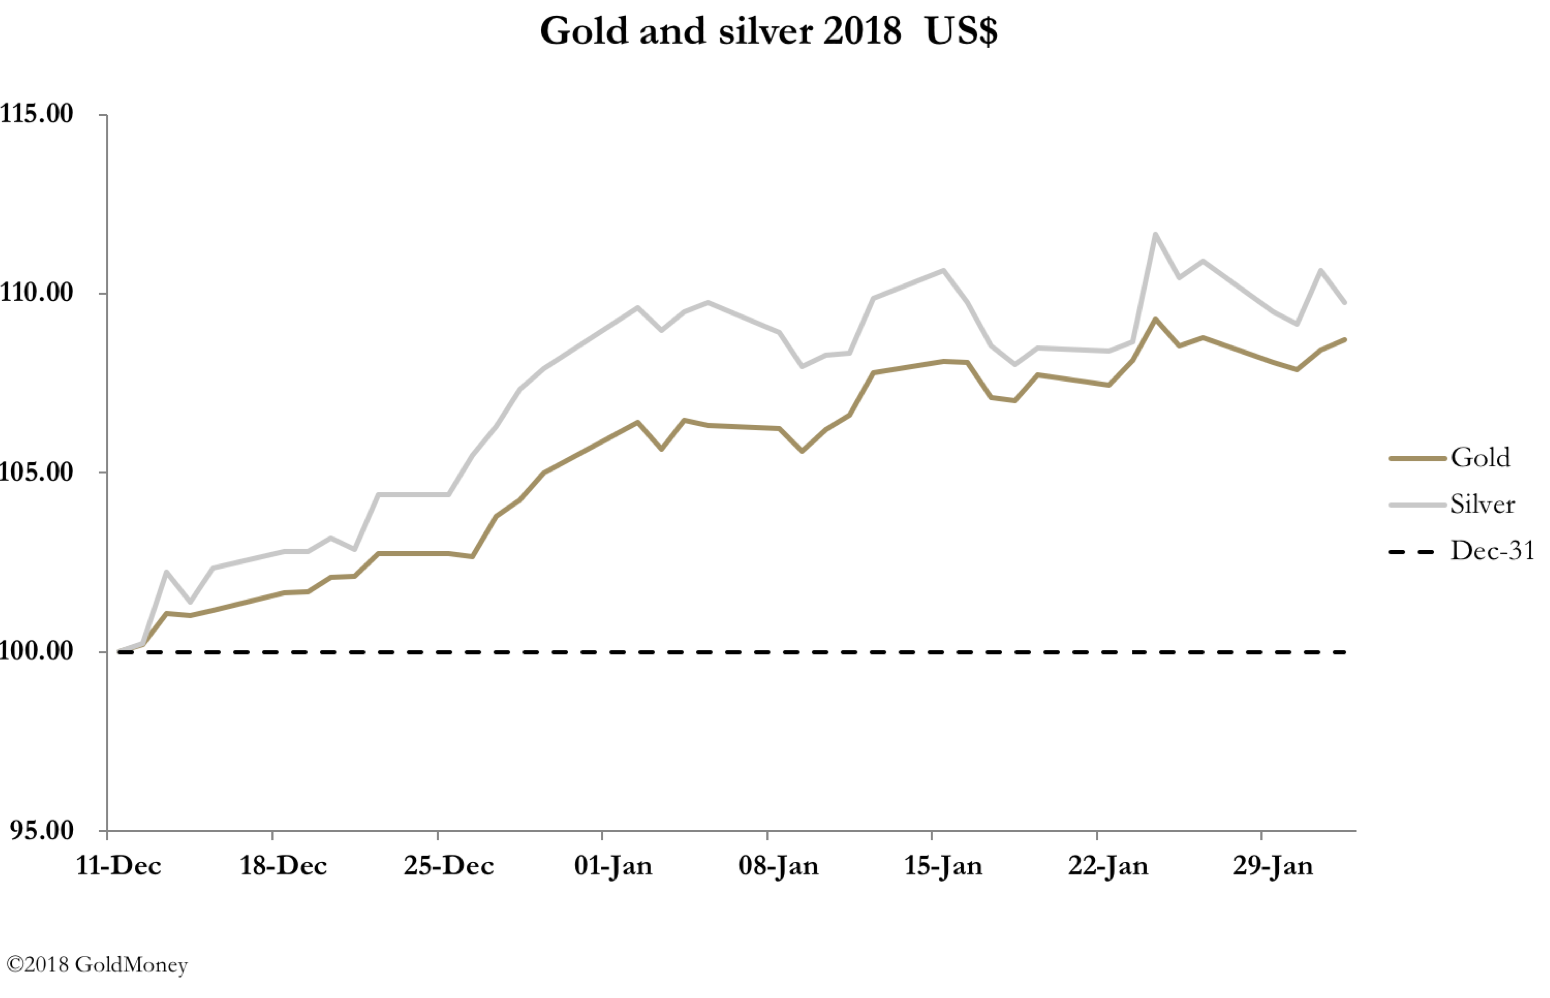 Gold and silver prices January 2018